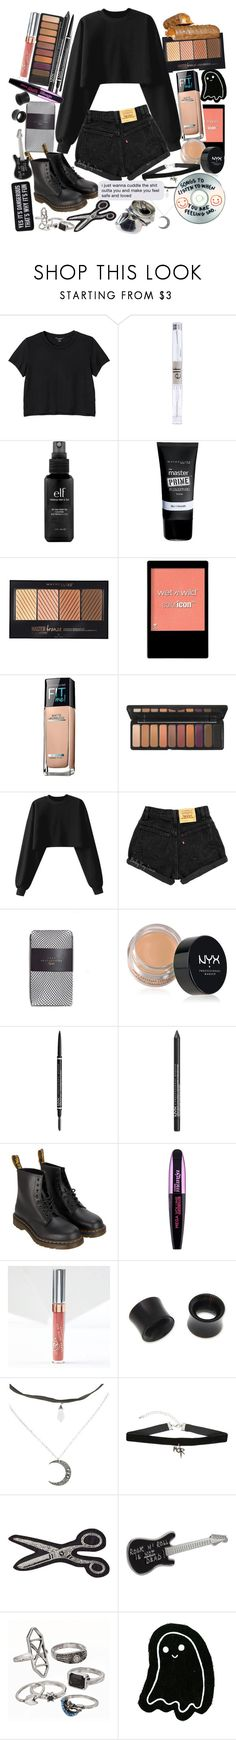 """You wrote 100 letters just for me, and I find them in my closet in the pockets of my jeans"" by thelyricsmatter ❤ liked on Polyvore featuring Monki, e.l.f., Maybelline, Wet n Wild, Zara, NYX, Dr. Martens, L'Oréal Paris, NOVICA and Hot Topic"